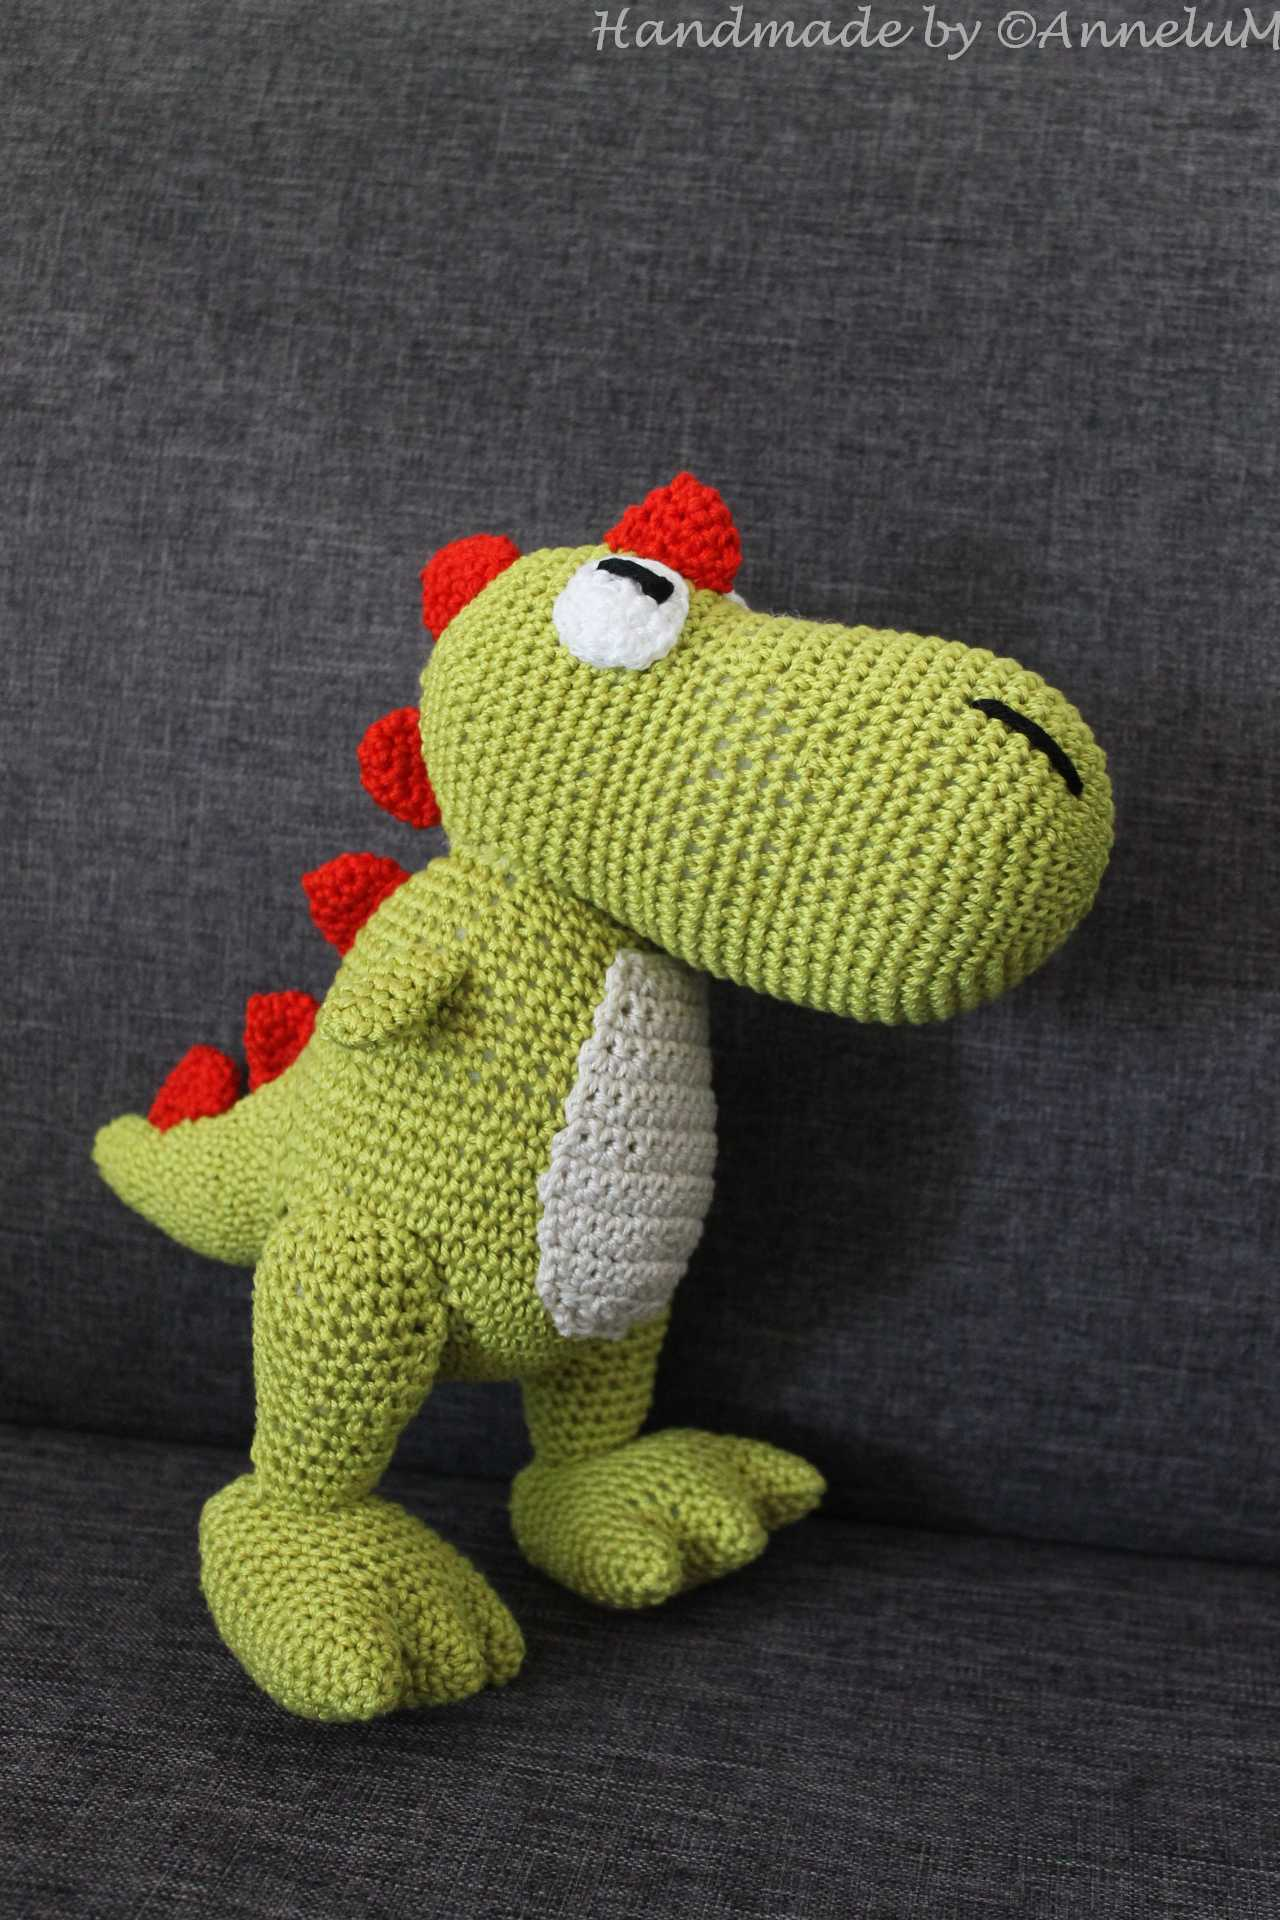 Tiny T-Rex Plush Handmade by AnneluM